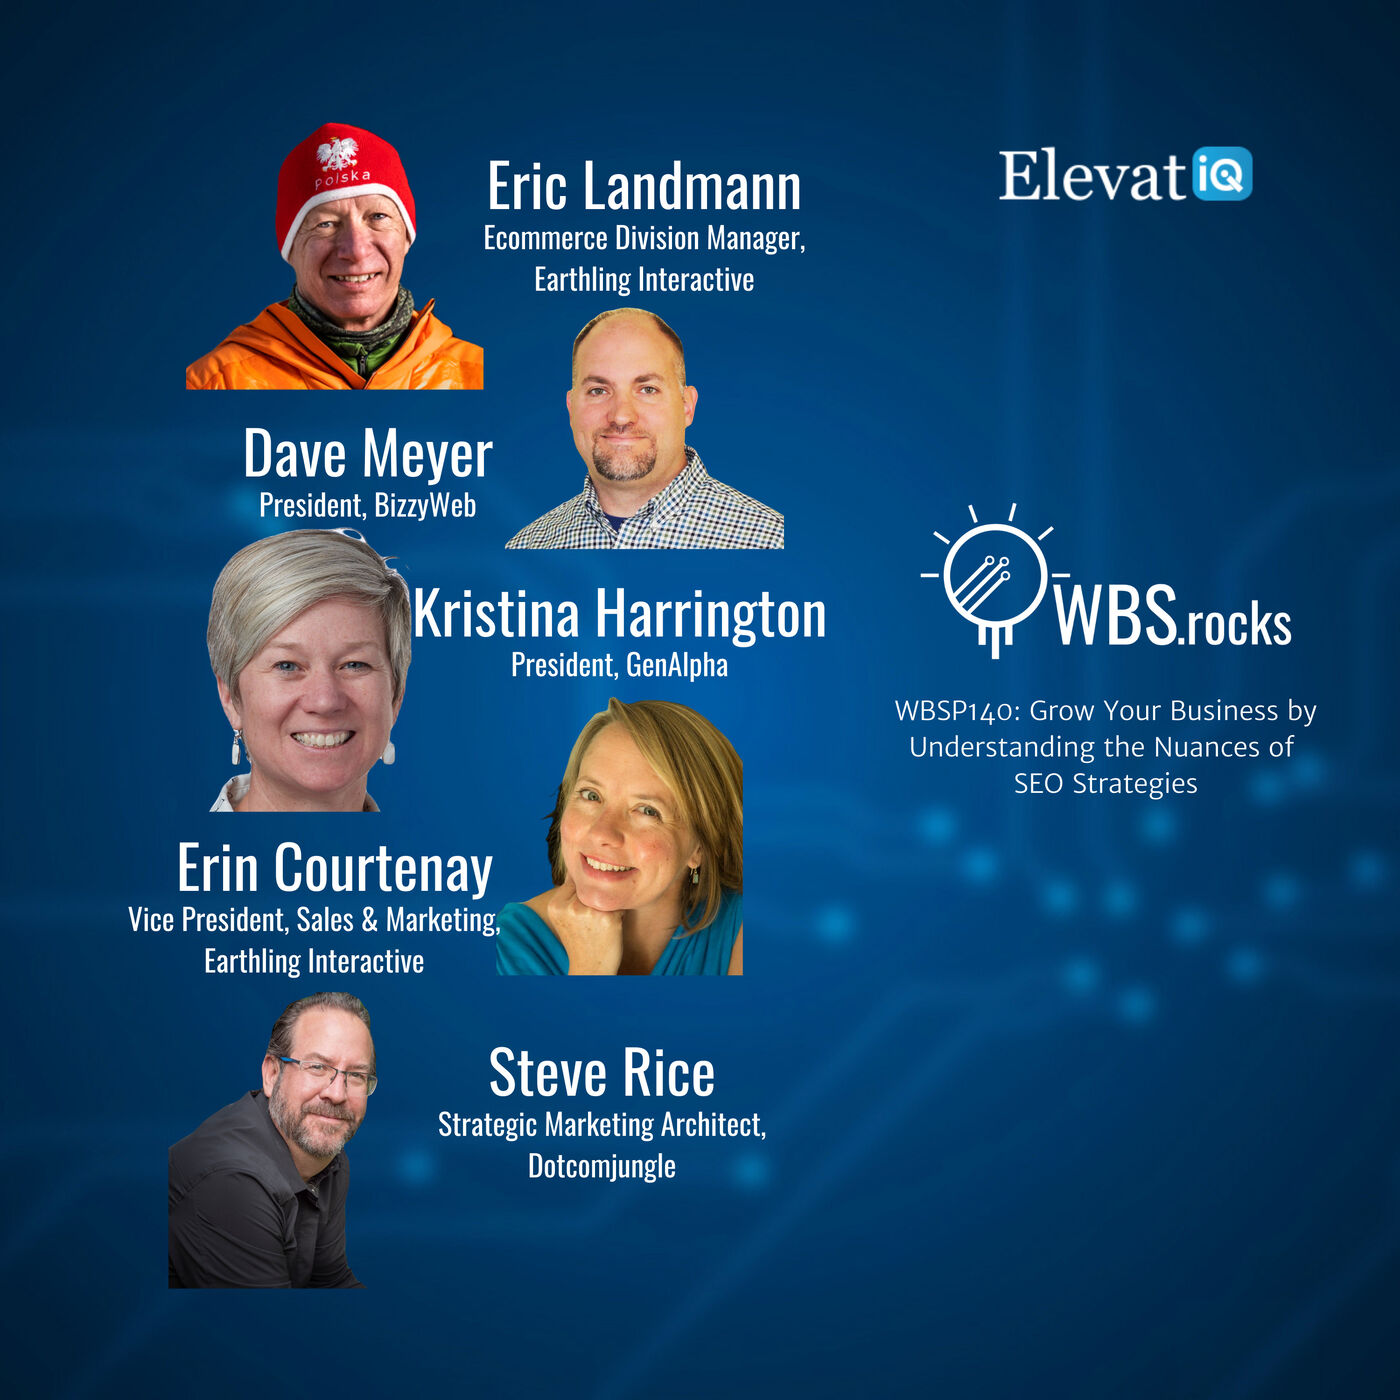 WBSP140: Grow Your Business by Understanding the Nuances of SEO Strategies, a Live Interview w/ a Panel of Experts